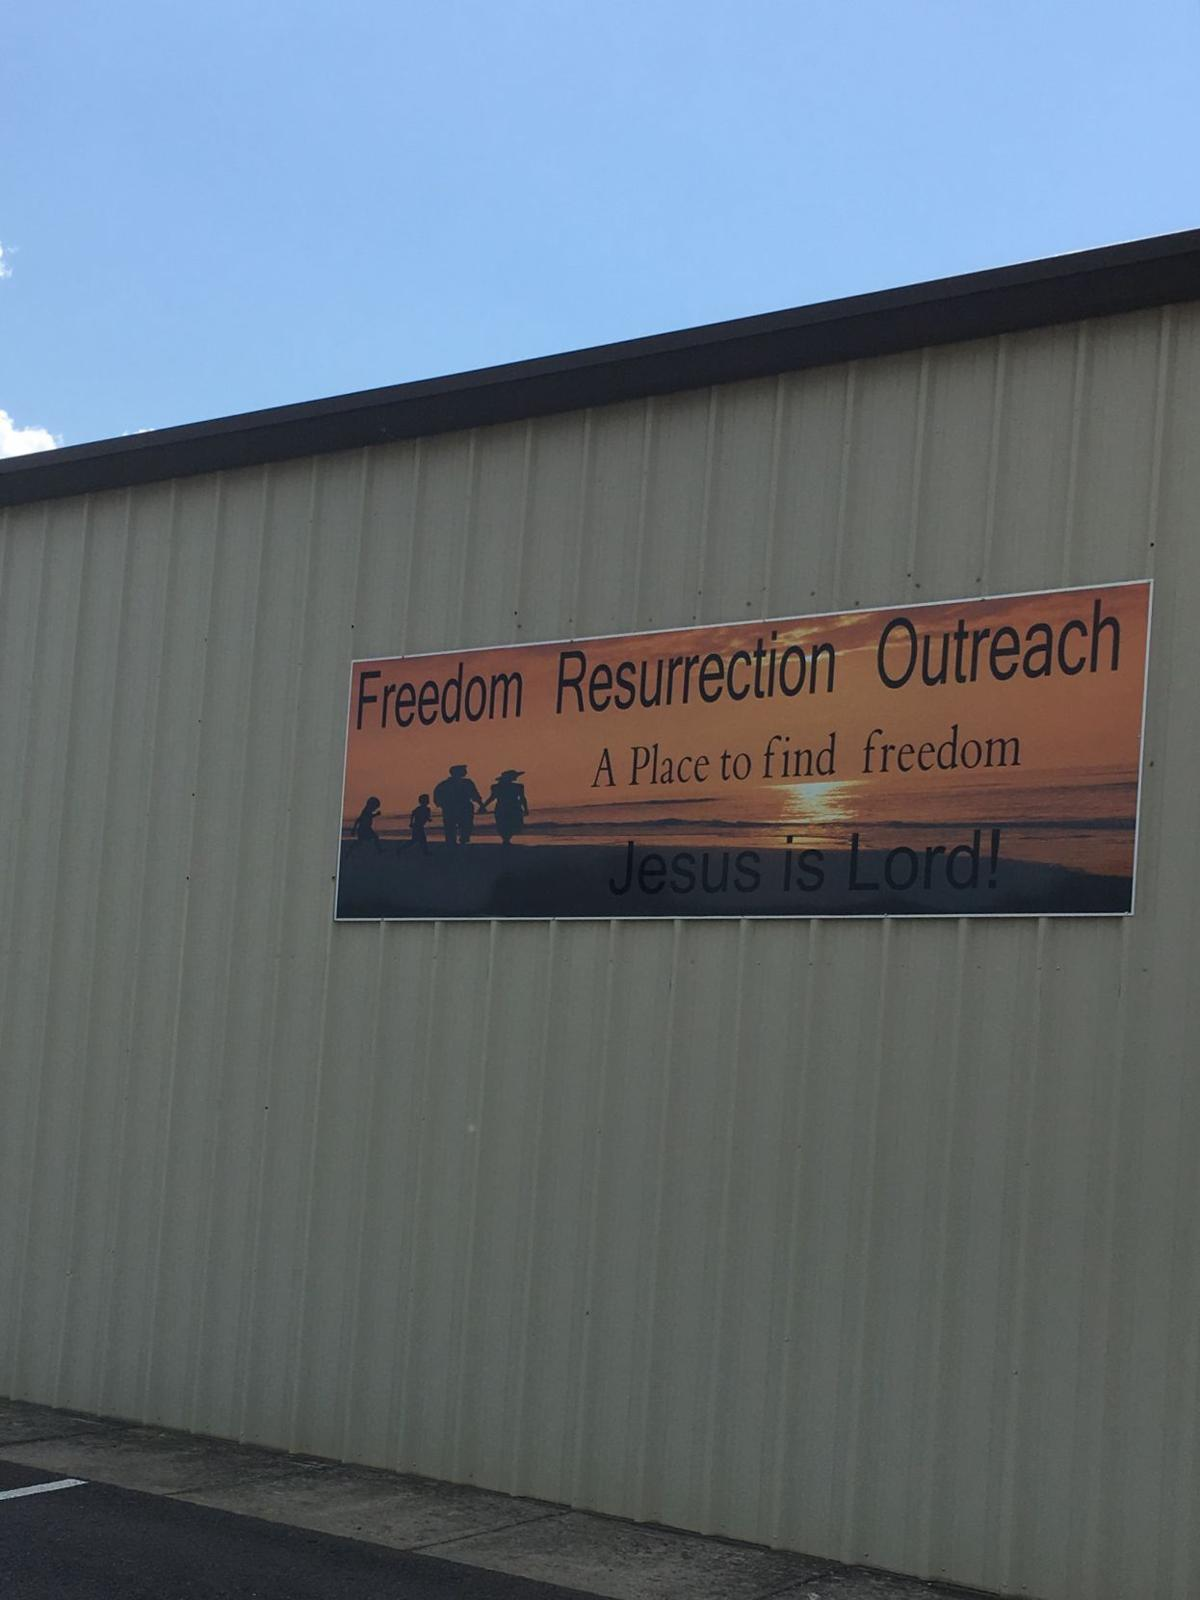 freedom resurrection outreach church in pell city welcomes those